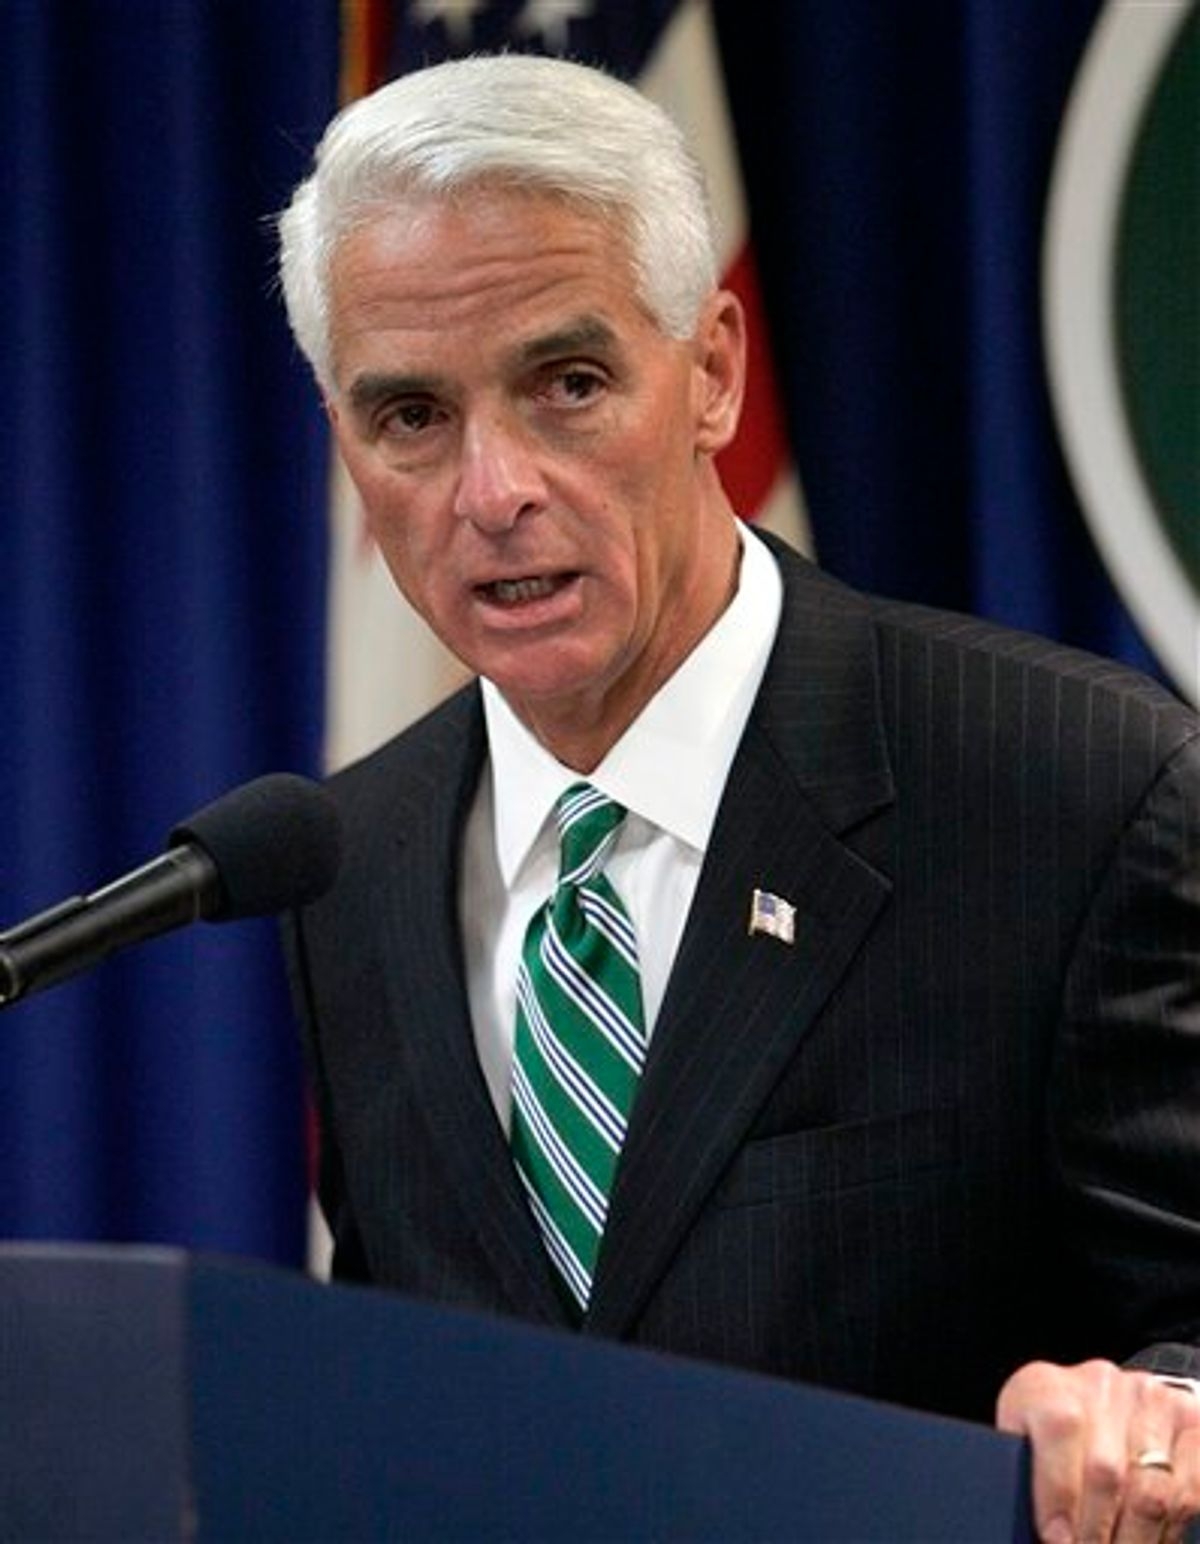 FILE - In this April 15, 2010 file photo, Gov. Charlie Crist speaks in Tallahassee, Fla. Plan A isn't working so well for Gov. Charlie Crist, a former rising Republican star who now trails badly in the Florida Senate primary, but Plans B, C and D don't look much better. His populist approach to governing no longer sits well with angry conservatives who have abandoned him in favor of his primary opponent, former state House speaker Marco Rubio.  (AP Photo/Steve Cannon) (AP)